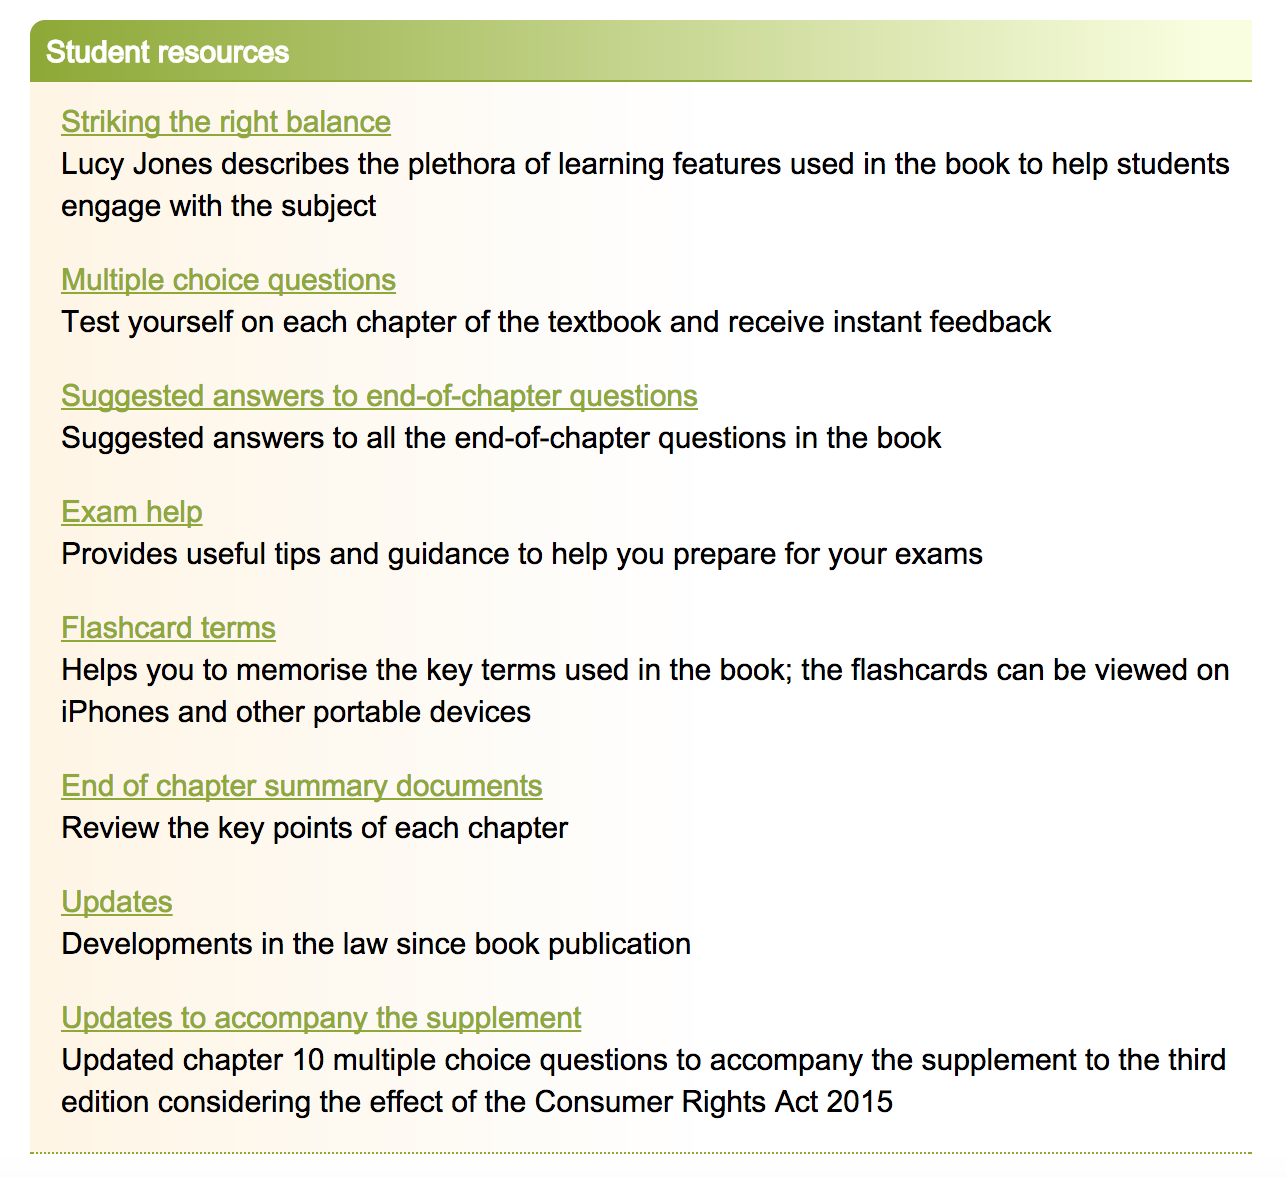 Textbooks | My Ideal Resource | SAGE Students' Blog